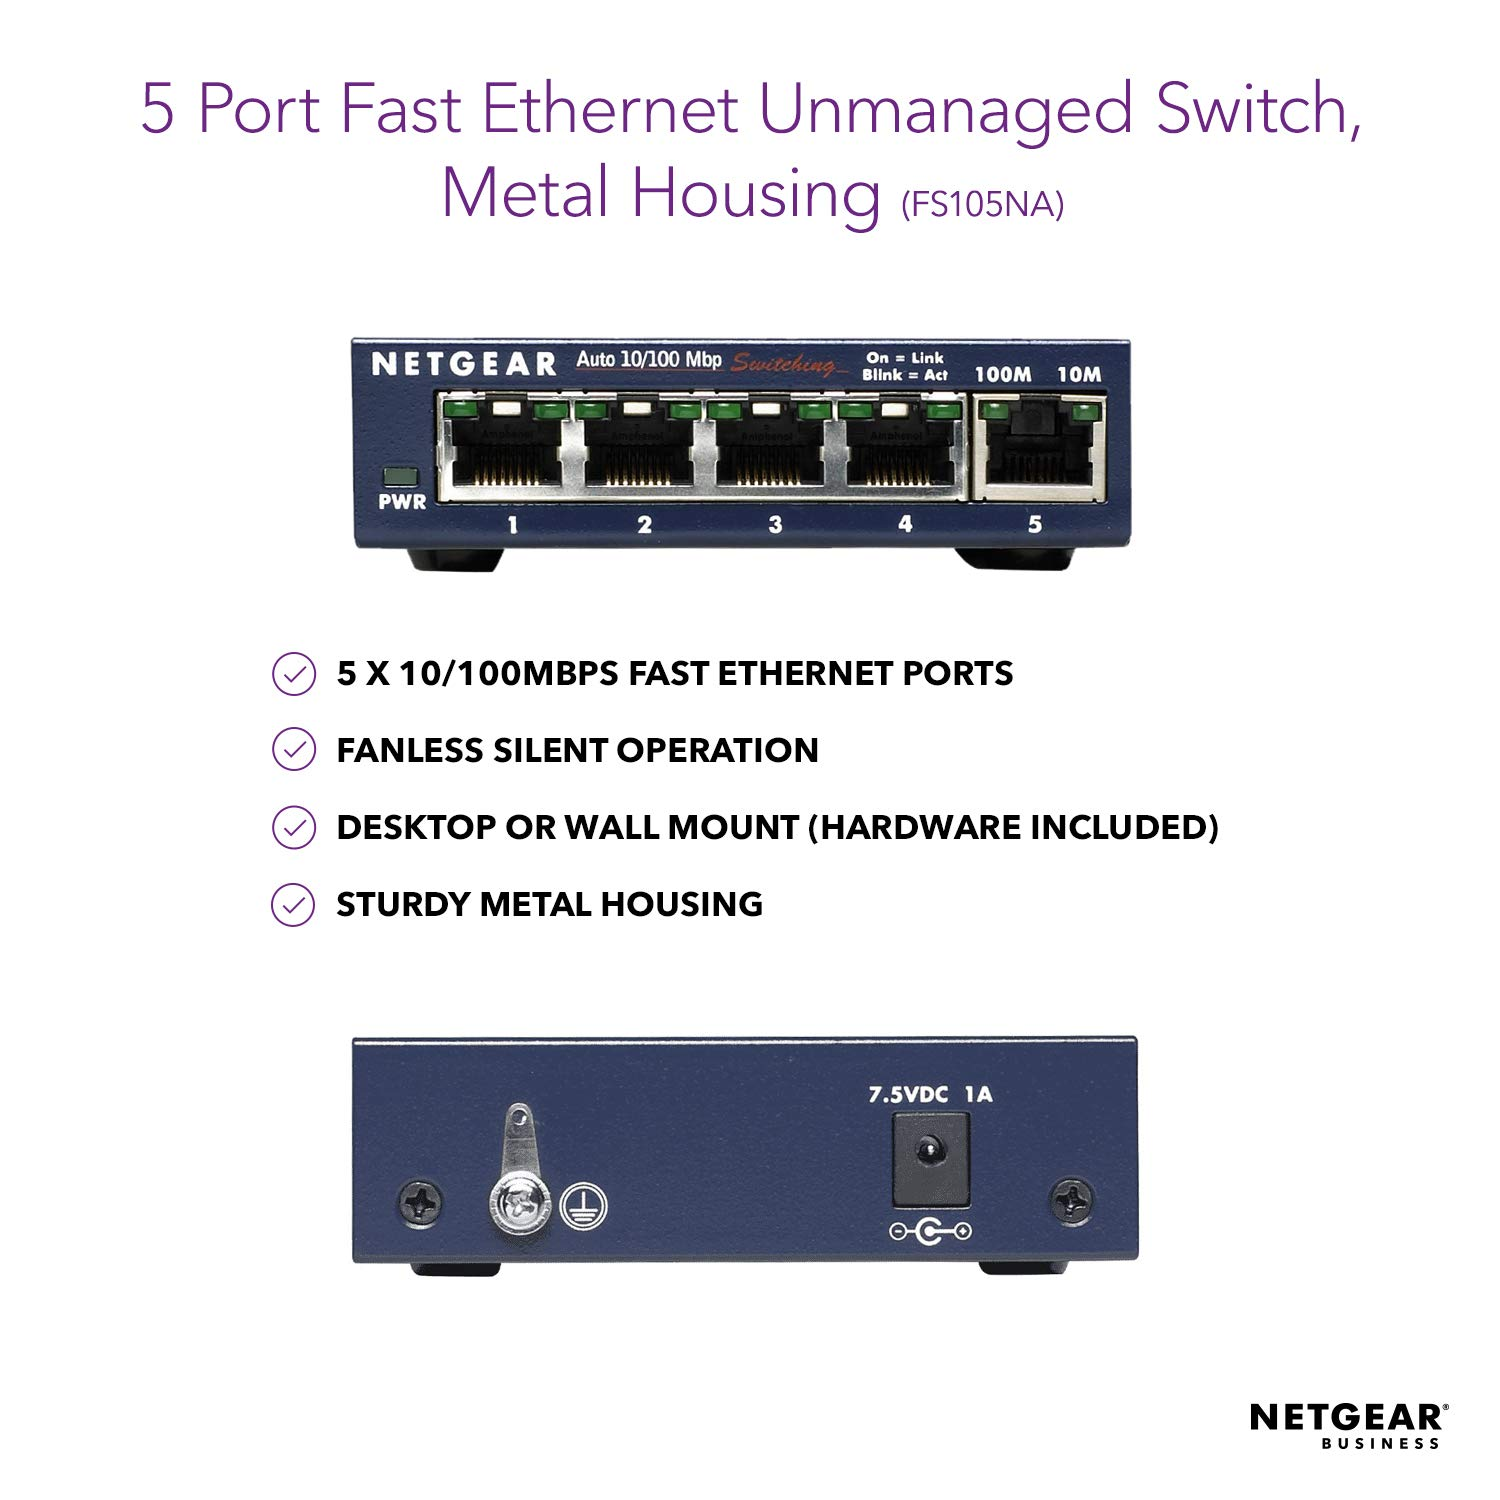 NETGEAR 5-Port Fast Ethernet 10/100 Unmanaged Switch (FS105NA) - Desktop, on